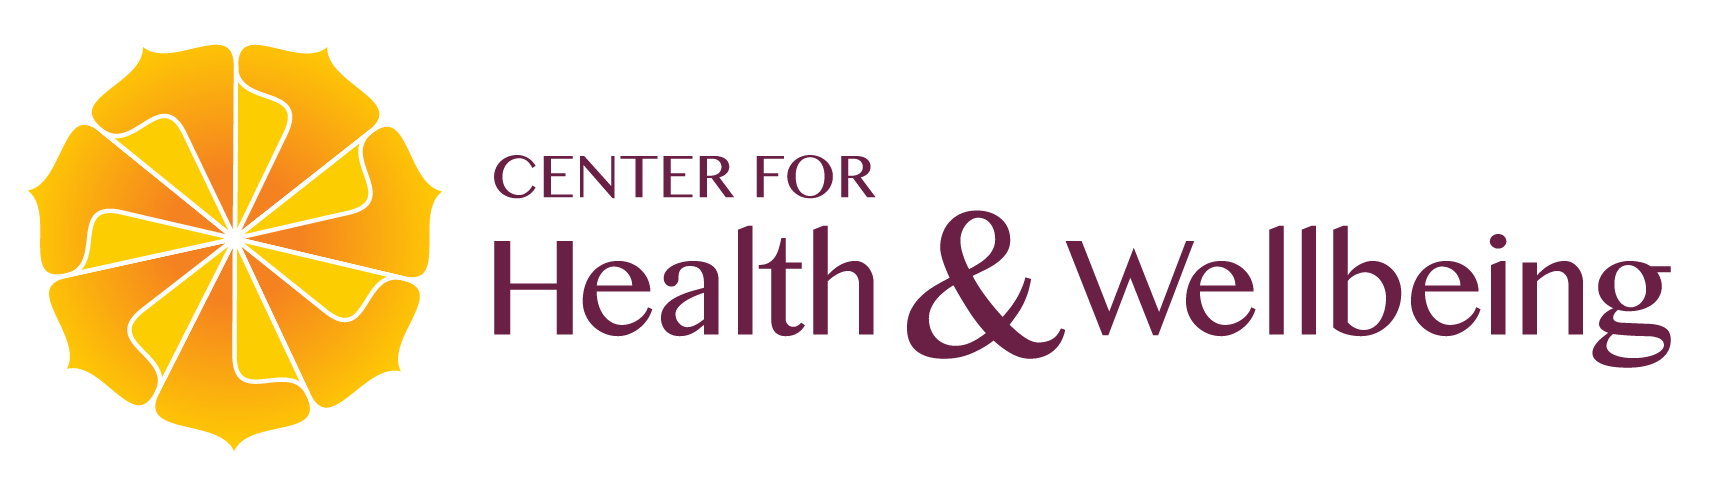 Center for Health and Wellbeing logo